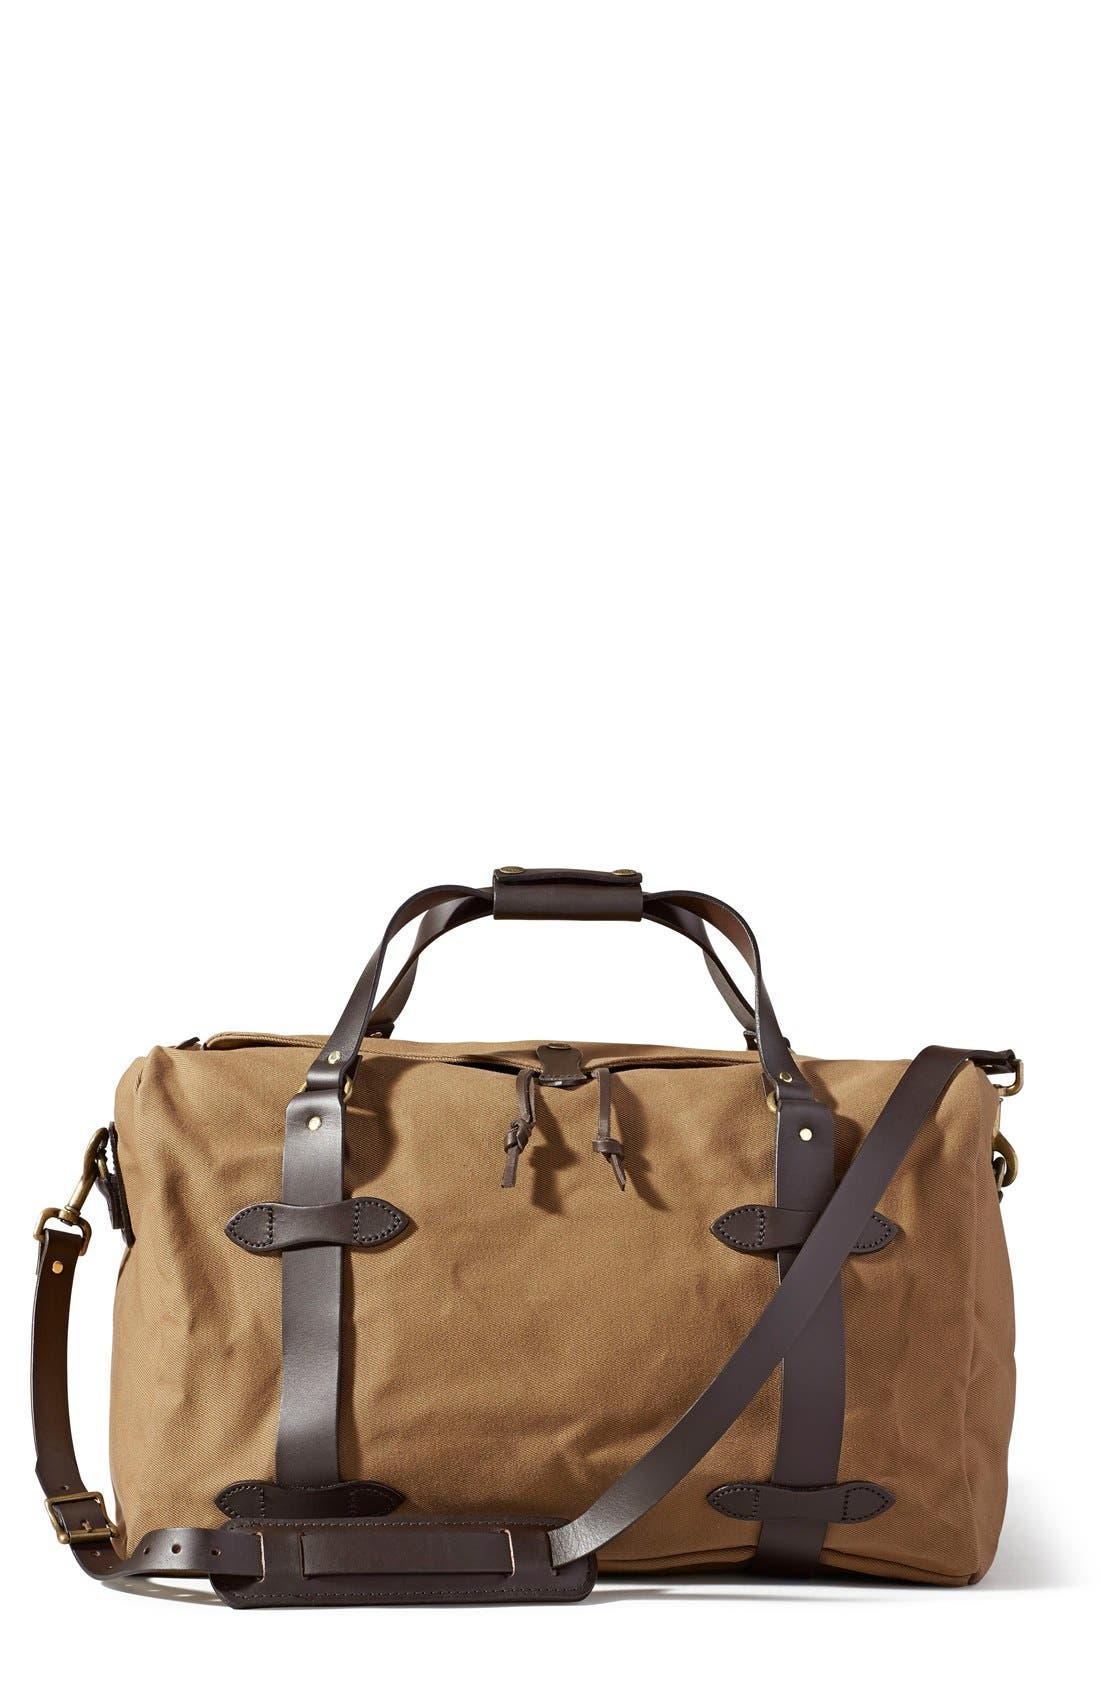 Medium Duffel Bag,                         Main,                         color, Tan